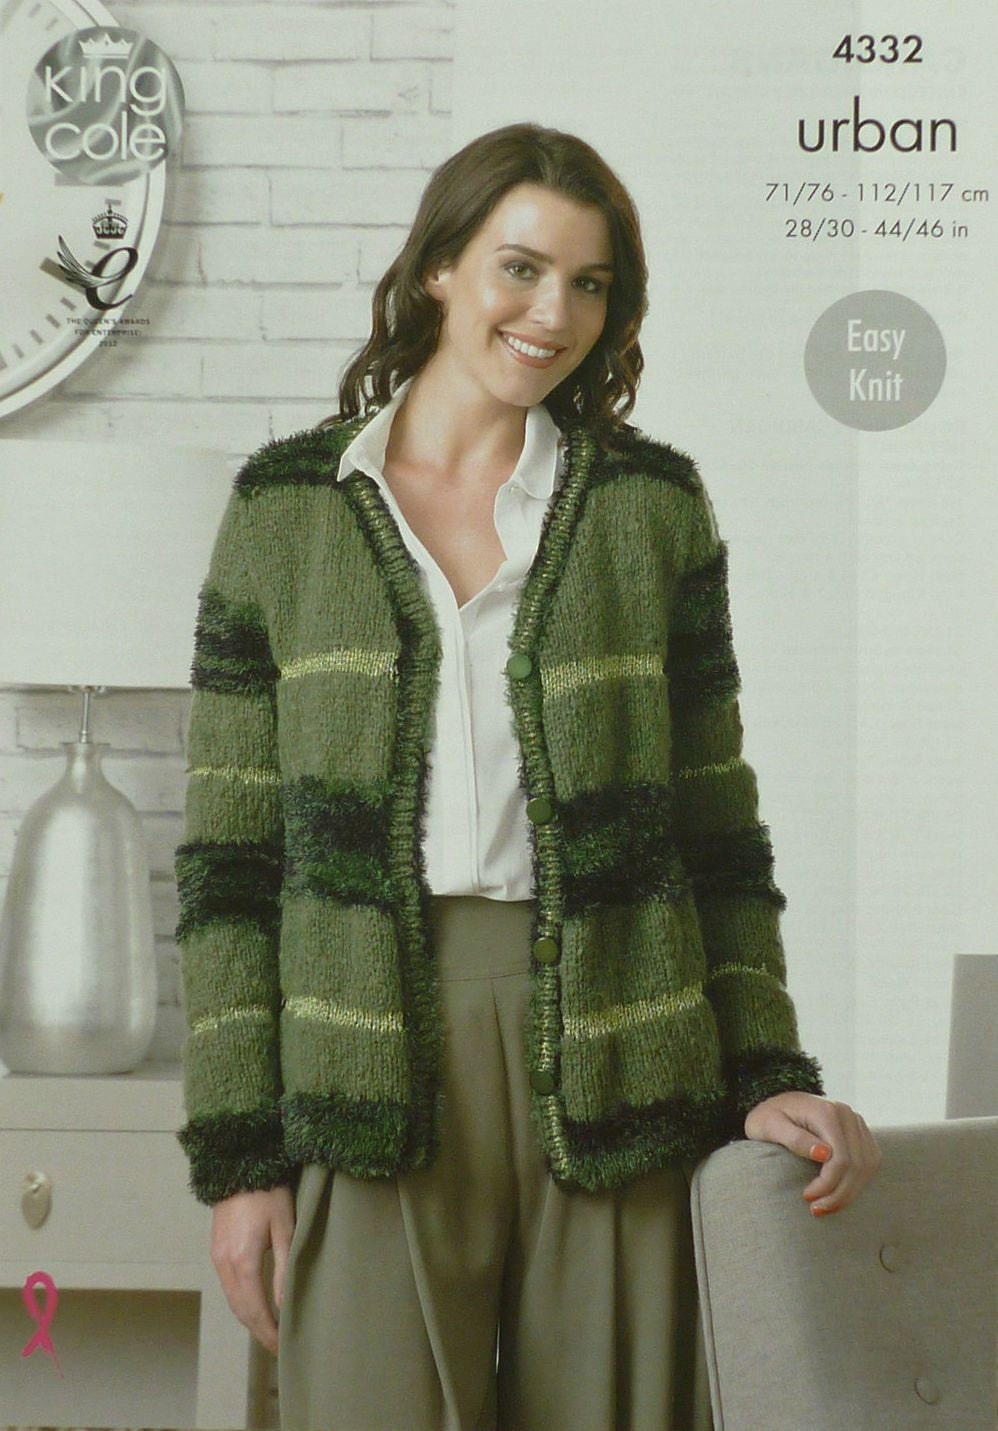 Womens Knitting Pattern K4332 Ladies Easy Knit Long Sleeve V-Neck Cardigan Kn...